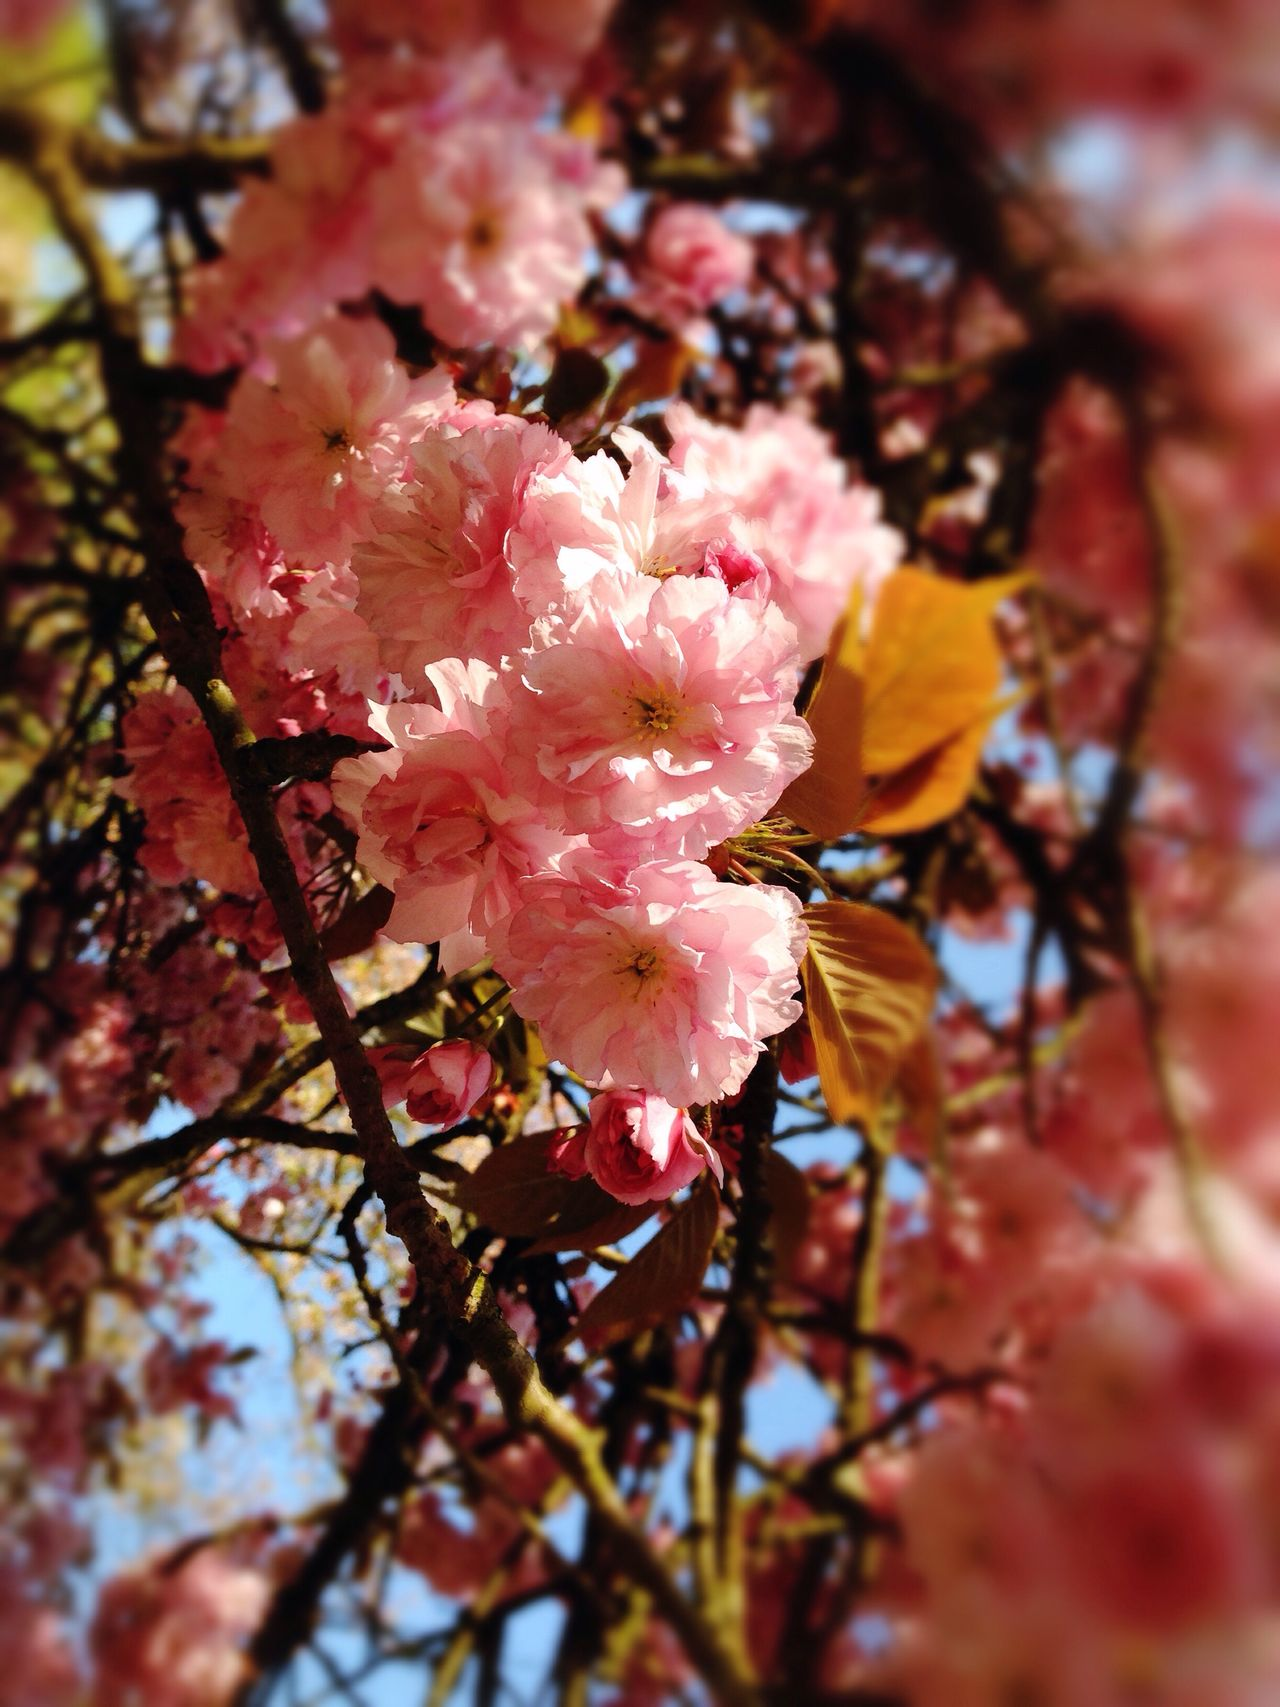 Blooming Blossom Pink Color Flower Nature Fragility Beauty In Nature Growth Springtime Outdoors Tree